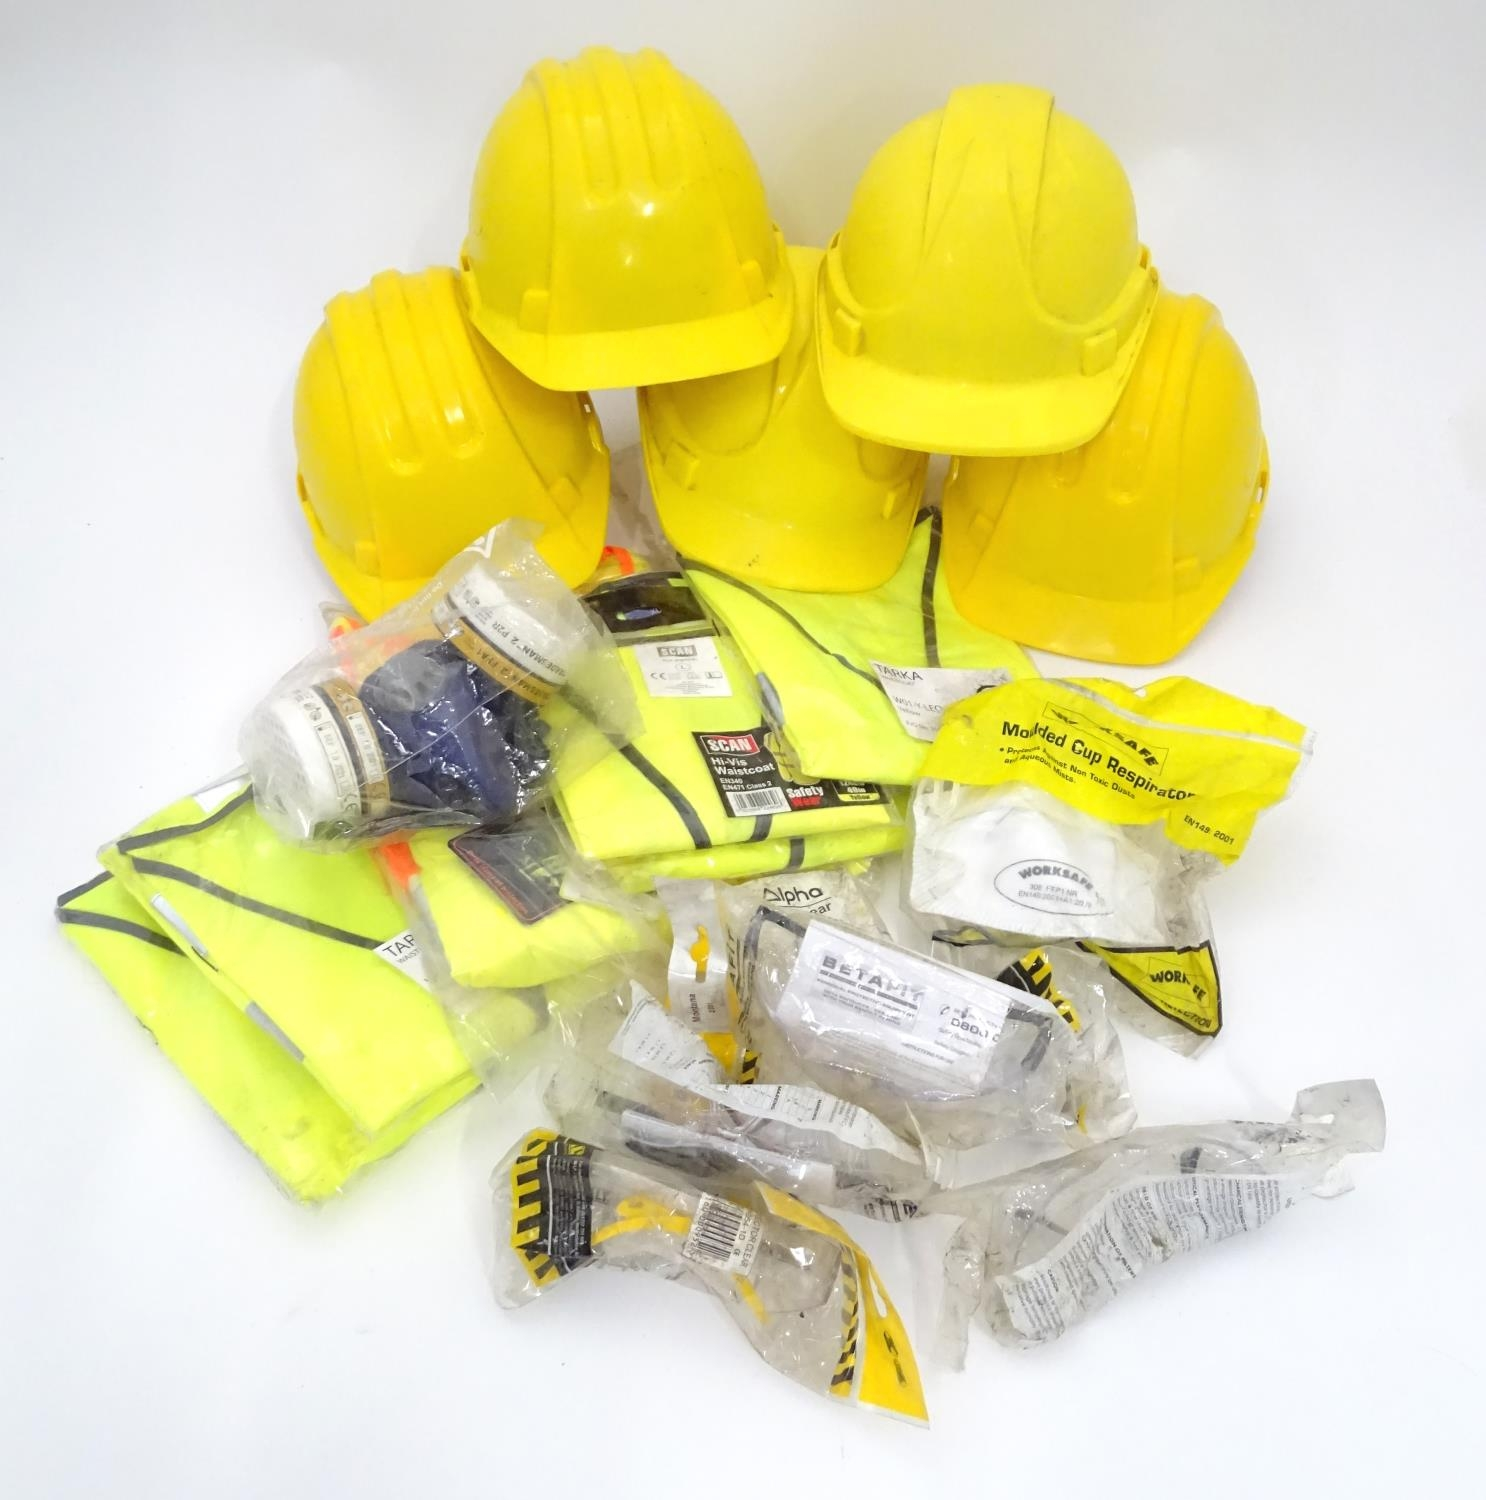 A quantity of health and safety equipment to include hard hats, safety glasses, hi vis vests etc.